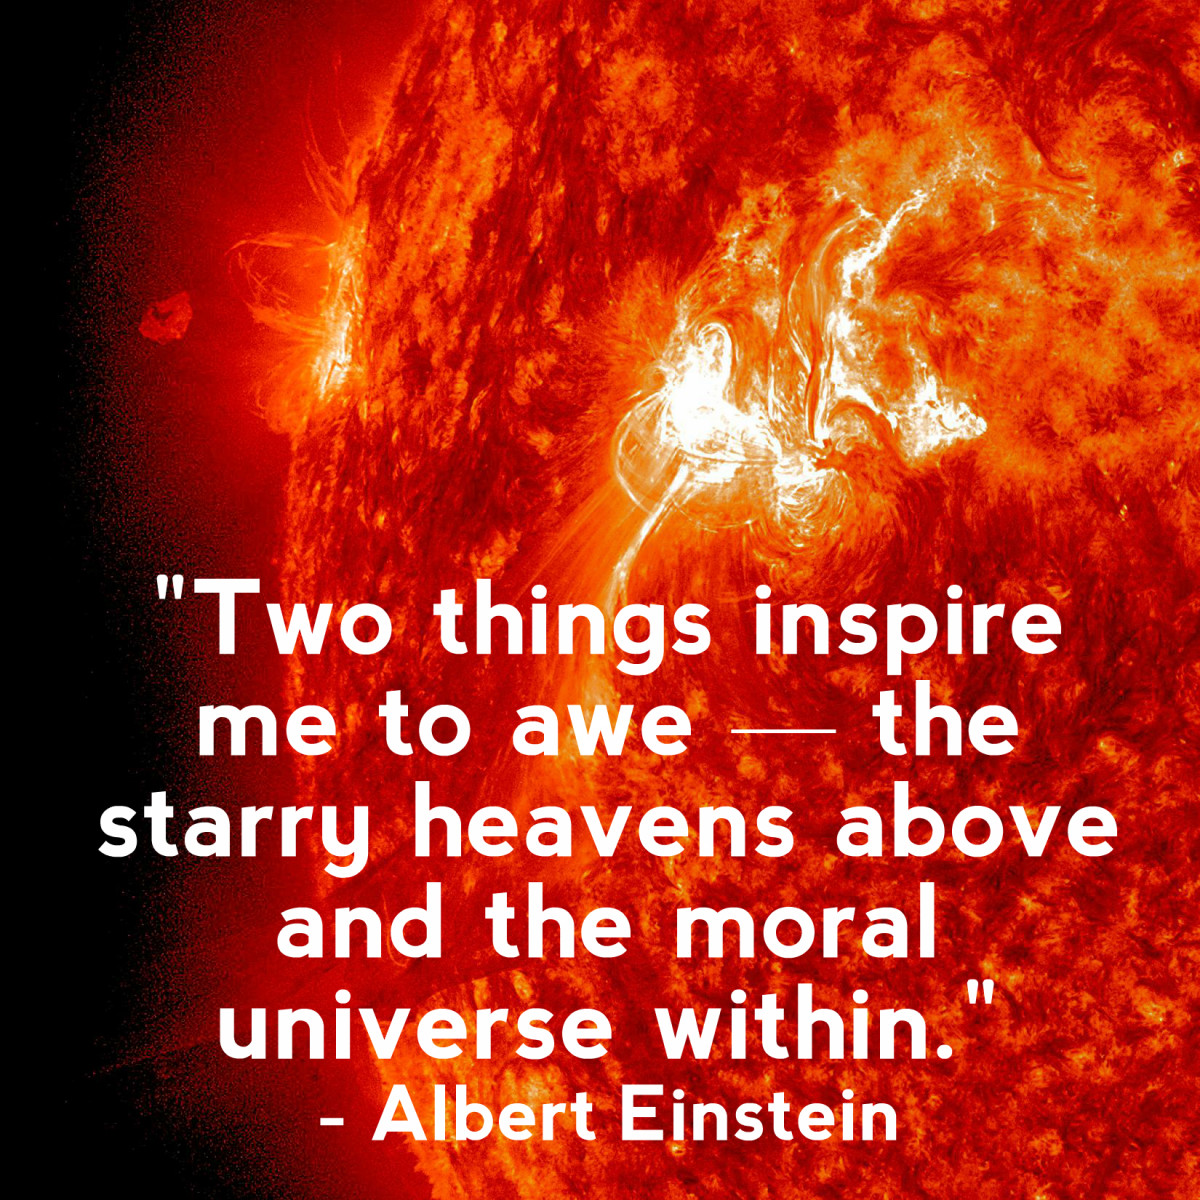 """Two things inspire me to awe — the starry heavens above and the moral universe within."" - Albert Einstein, German-born theoretical physicist"